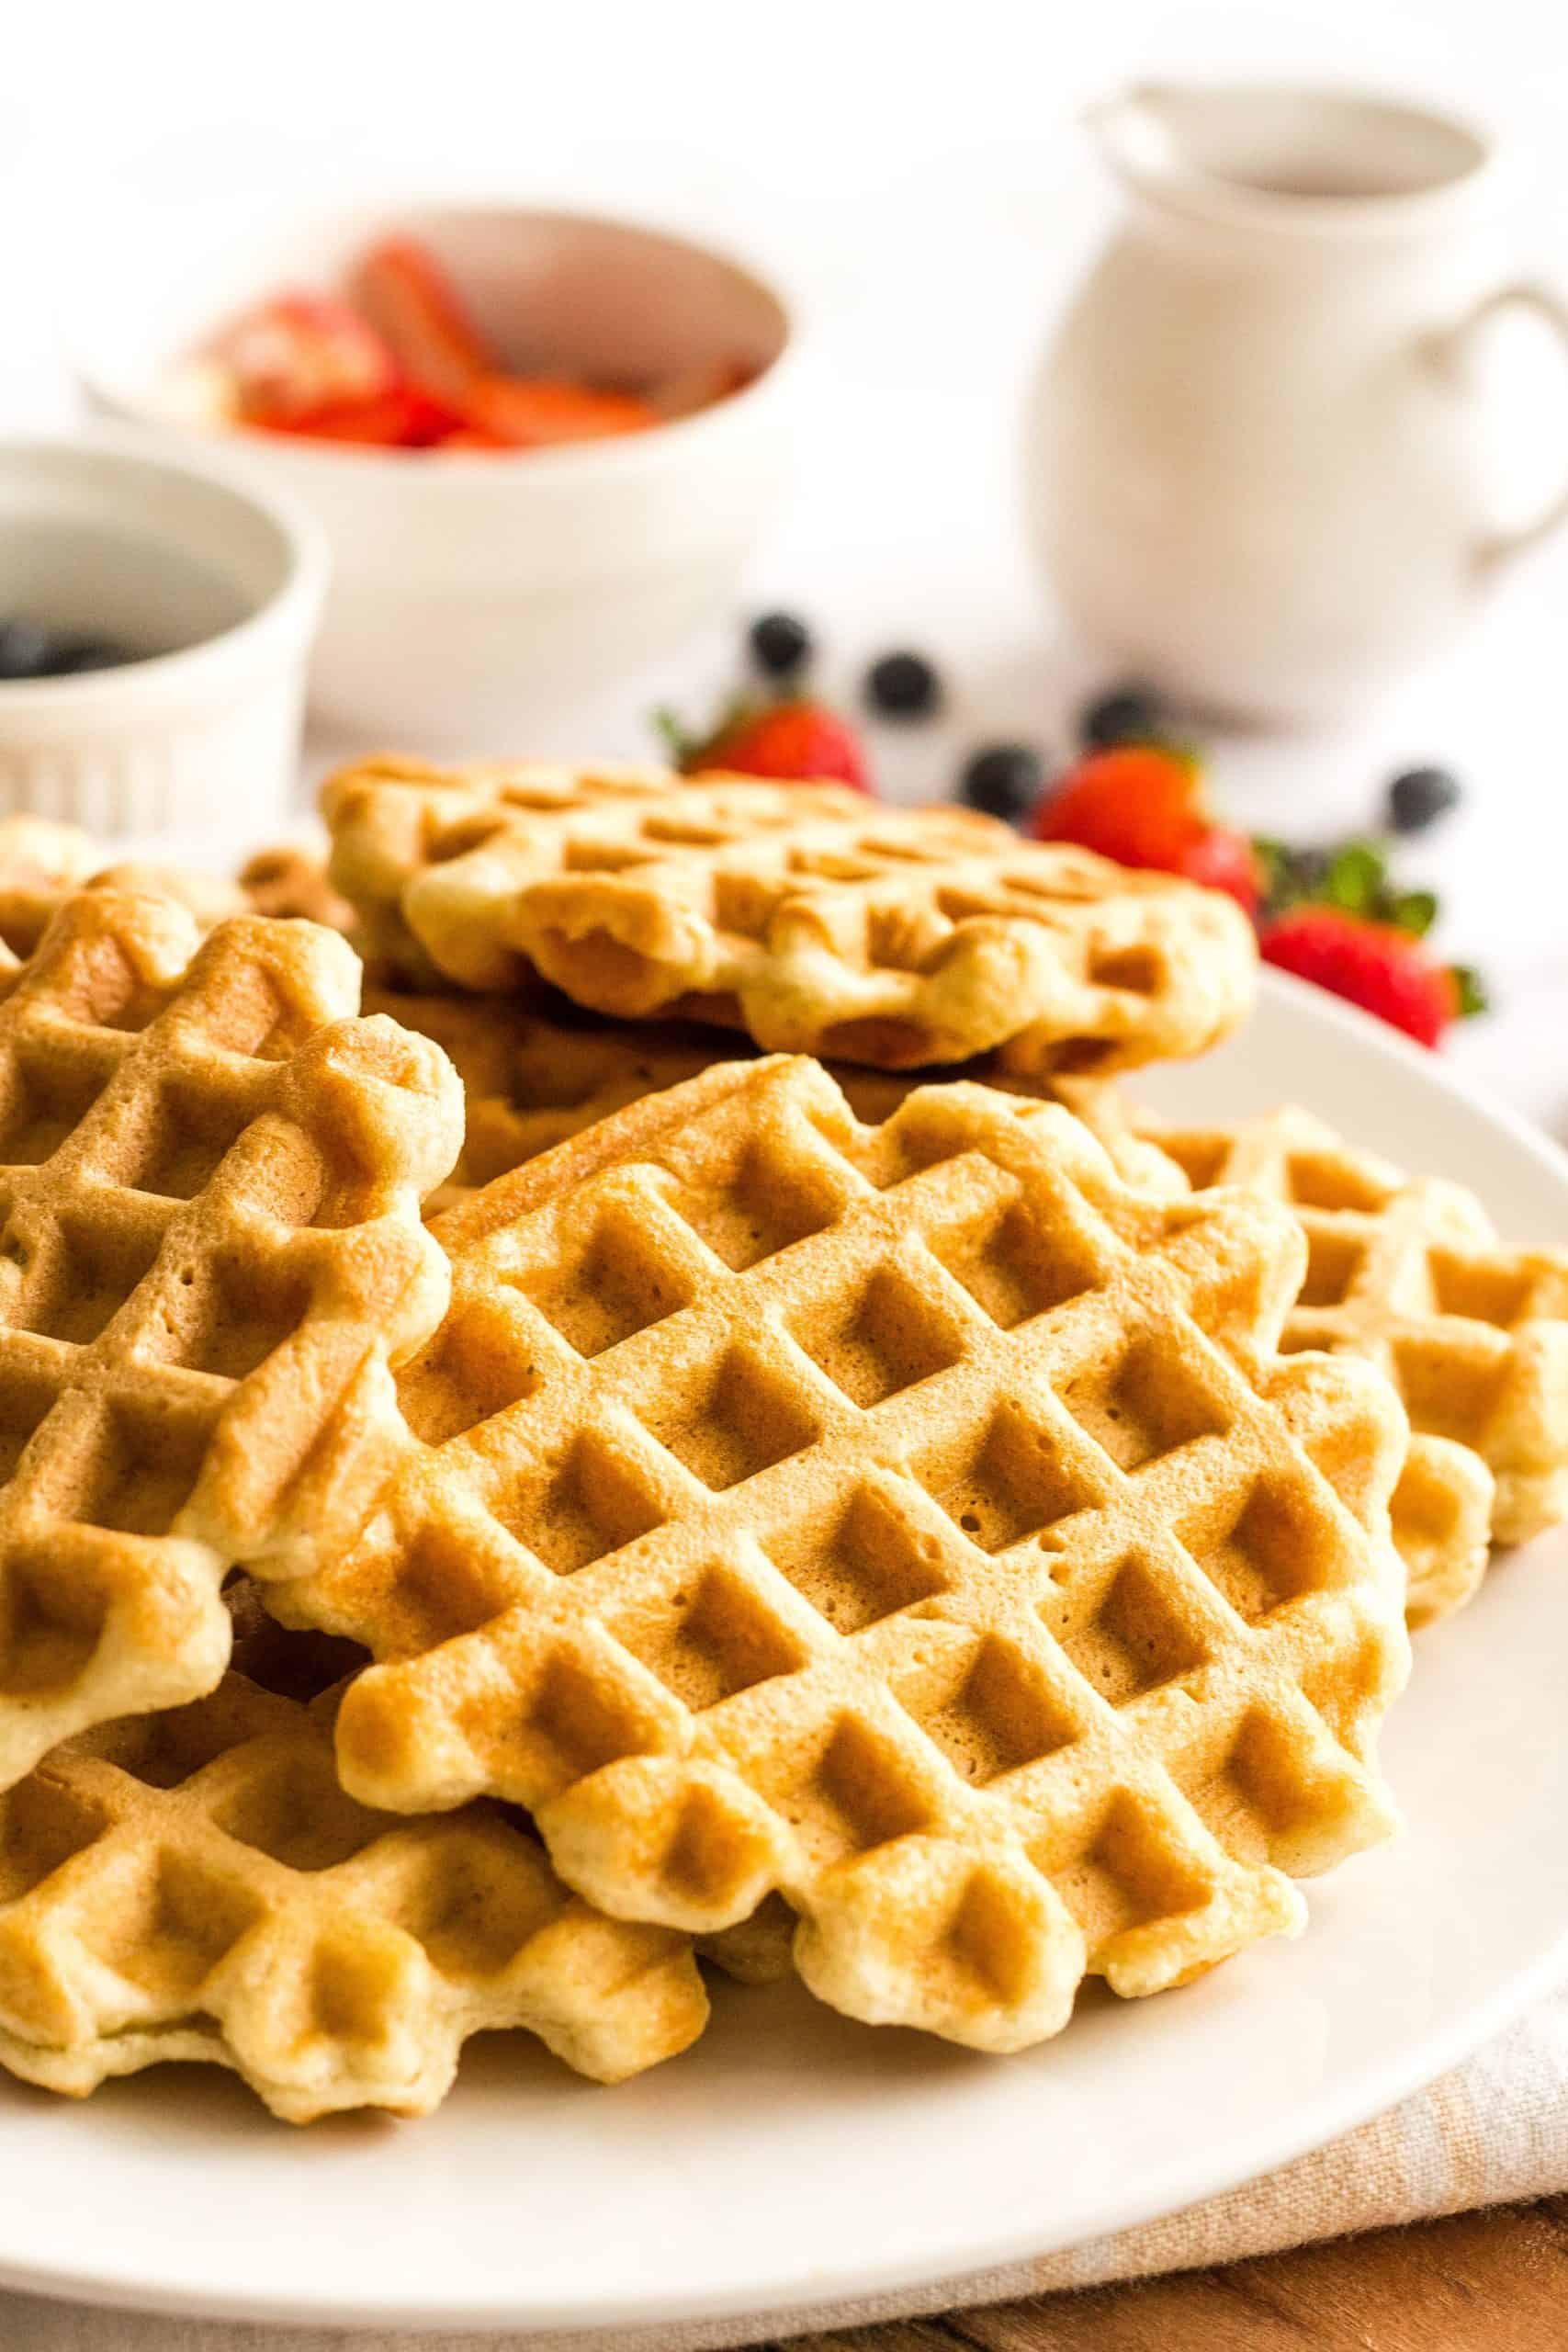 A plate full of freshly made gluten-free waffles.